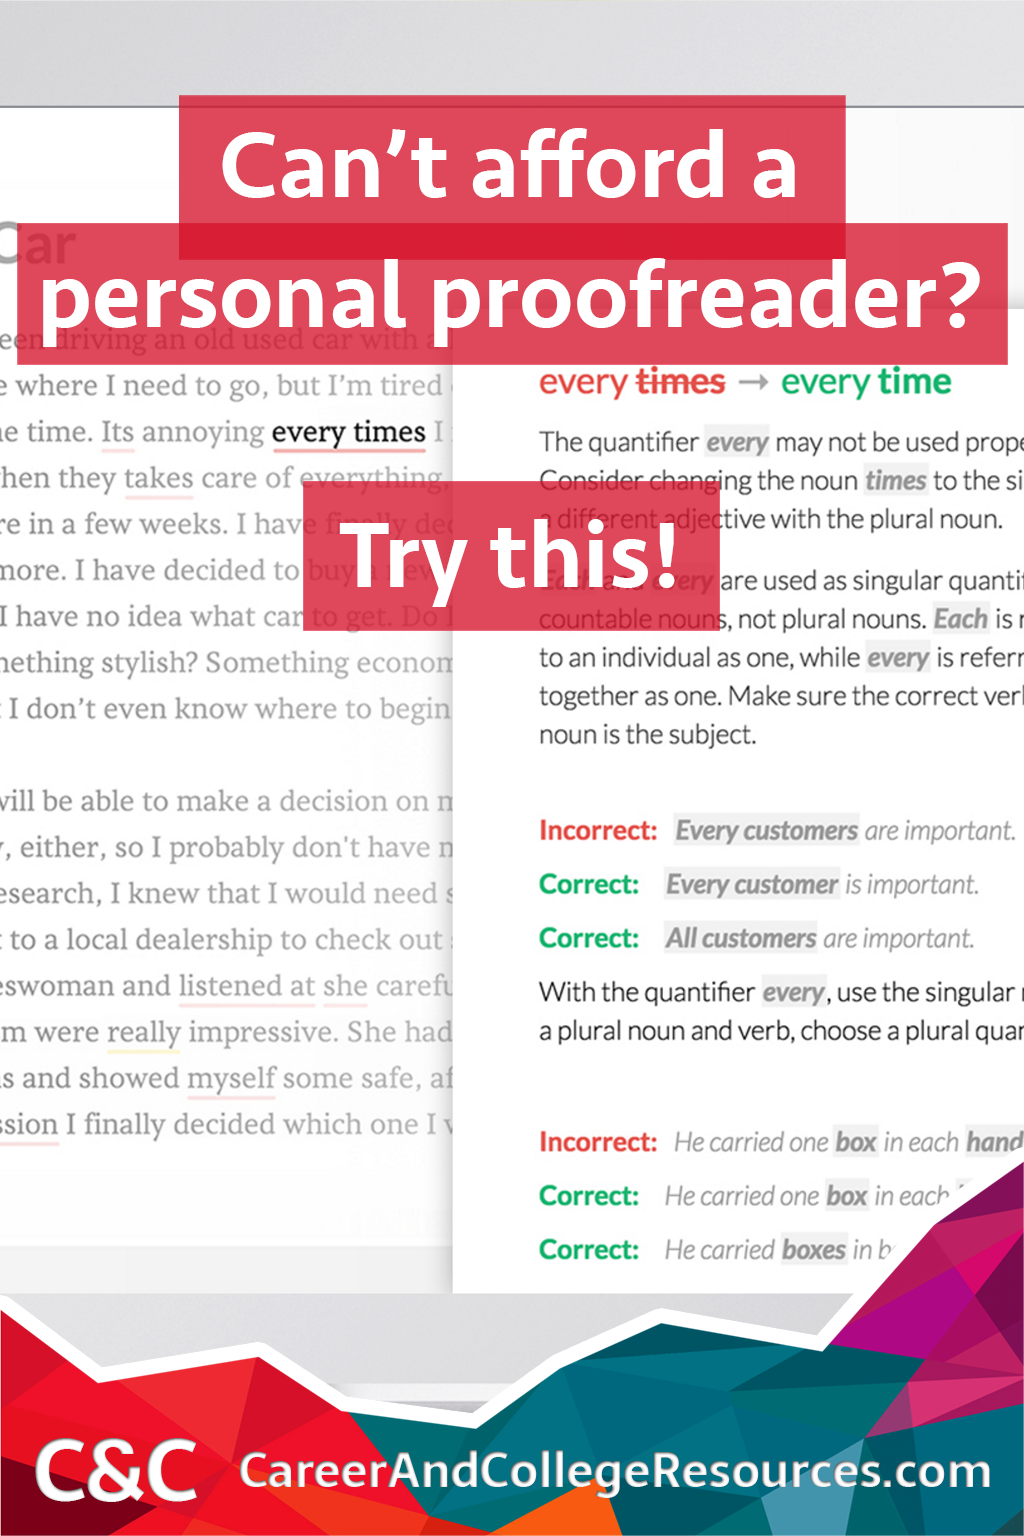 Can't afford a personal proofreader? Try this FREE app!